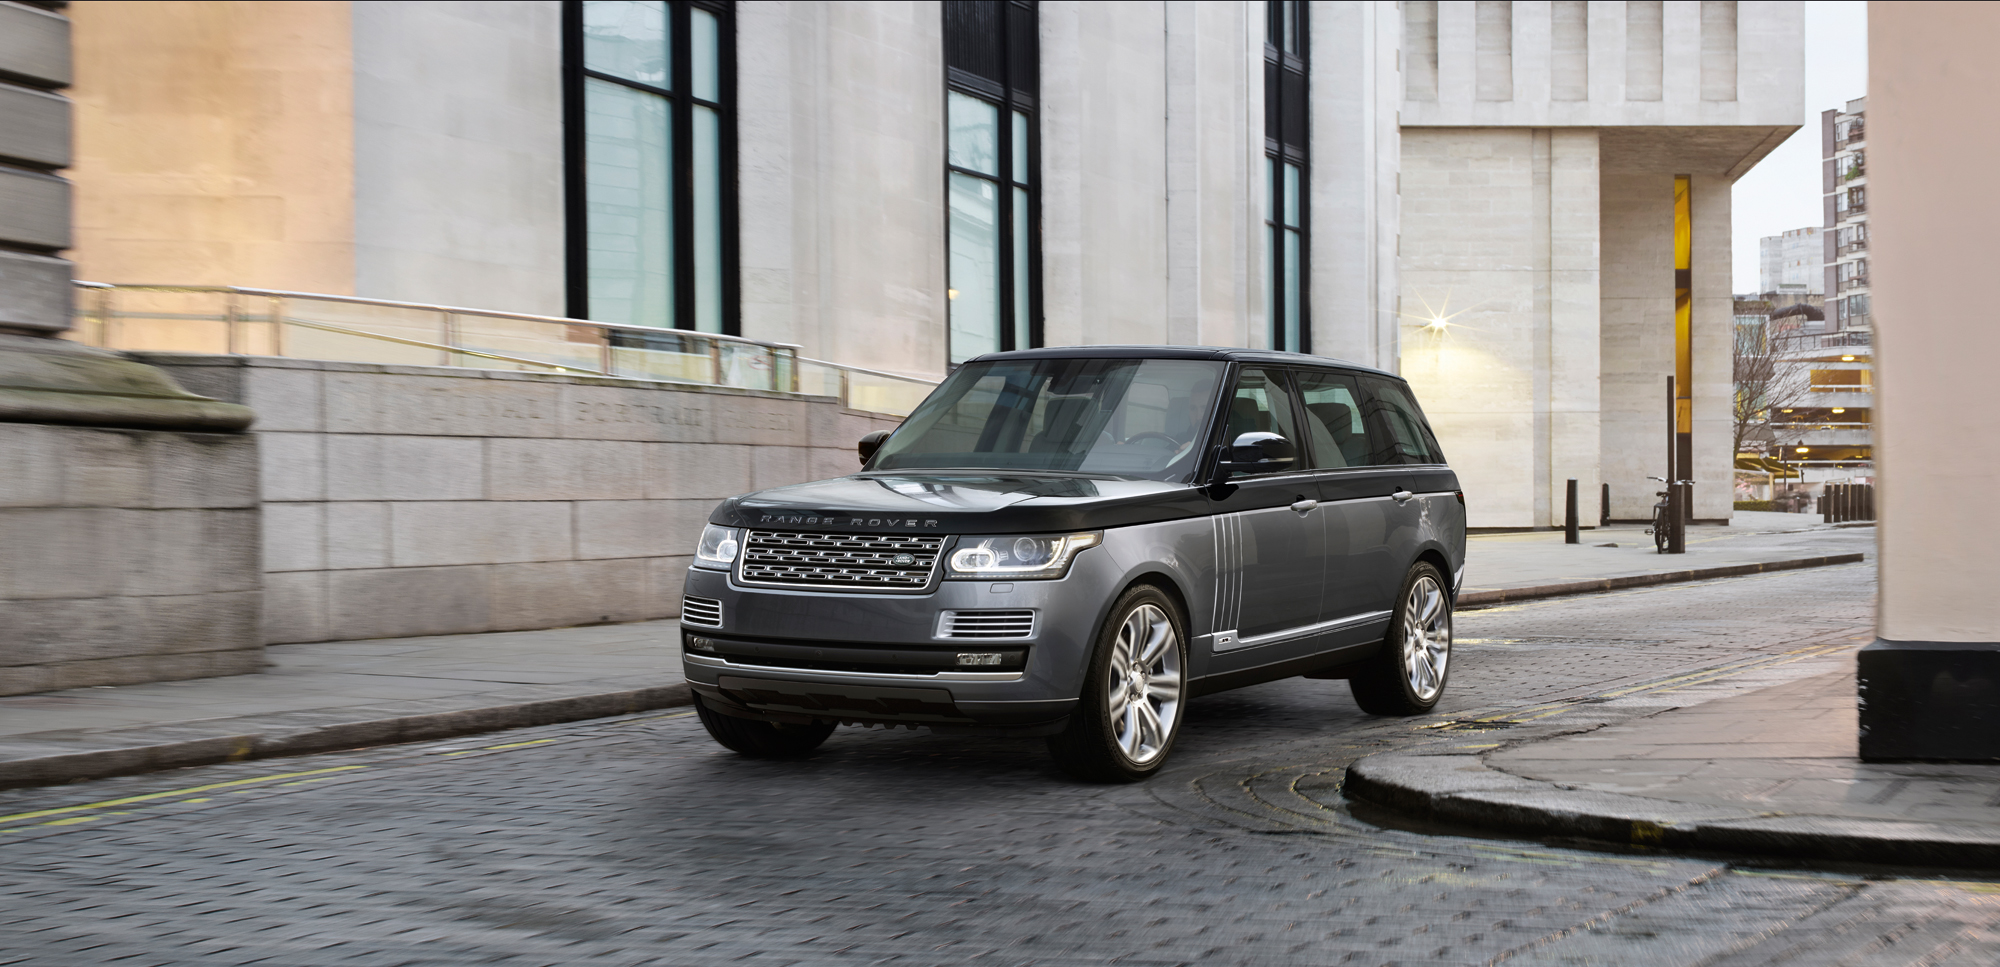 the is holland landrover most and rover suv expensive buy land range